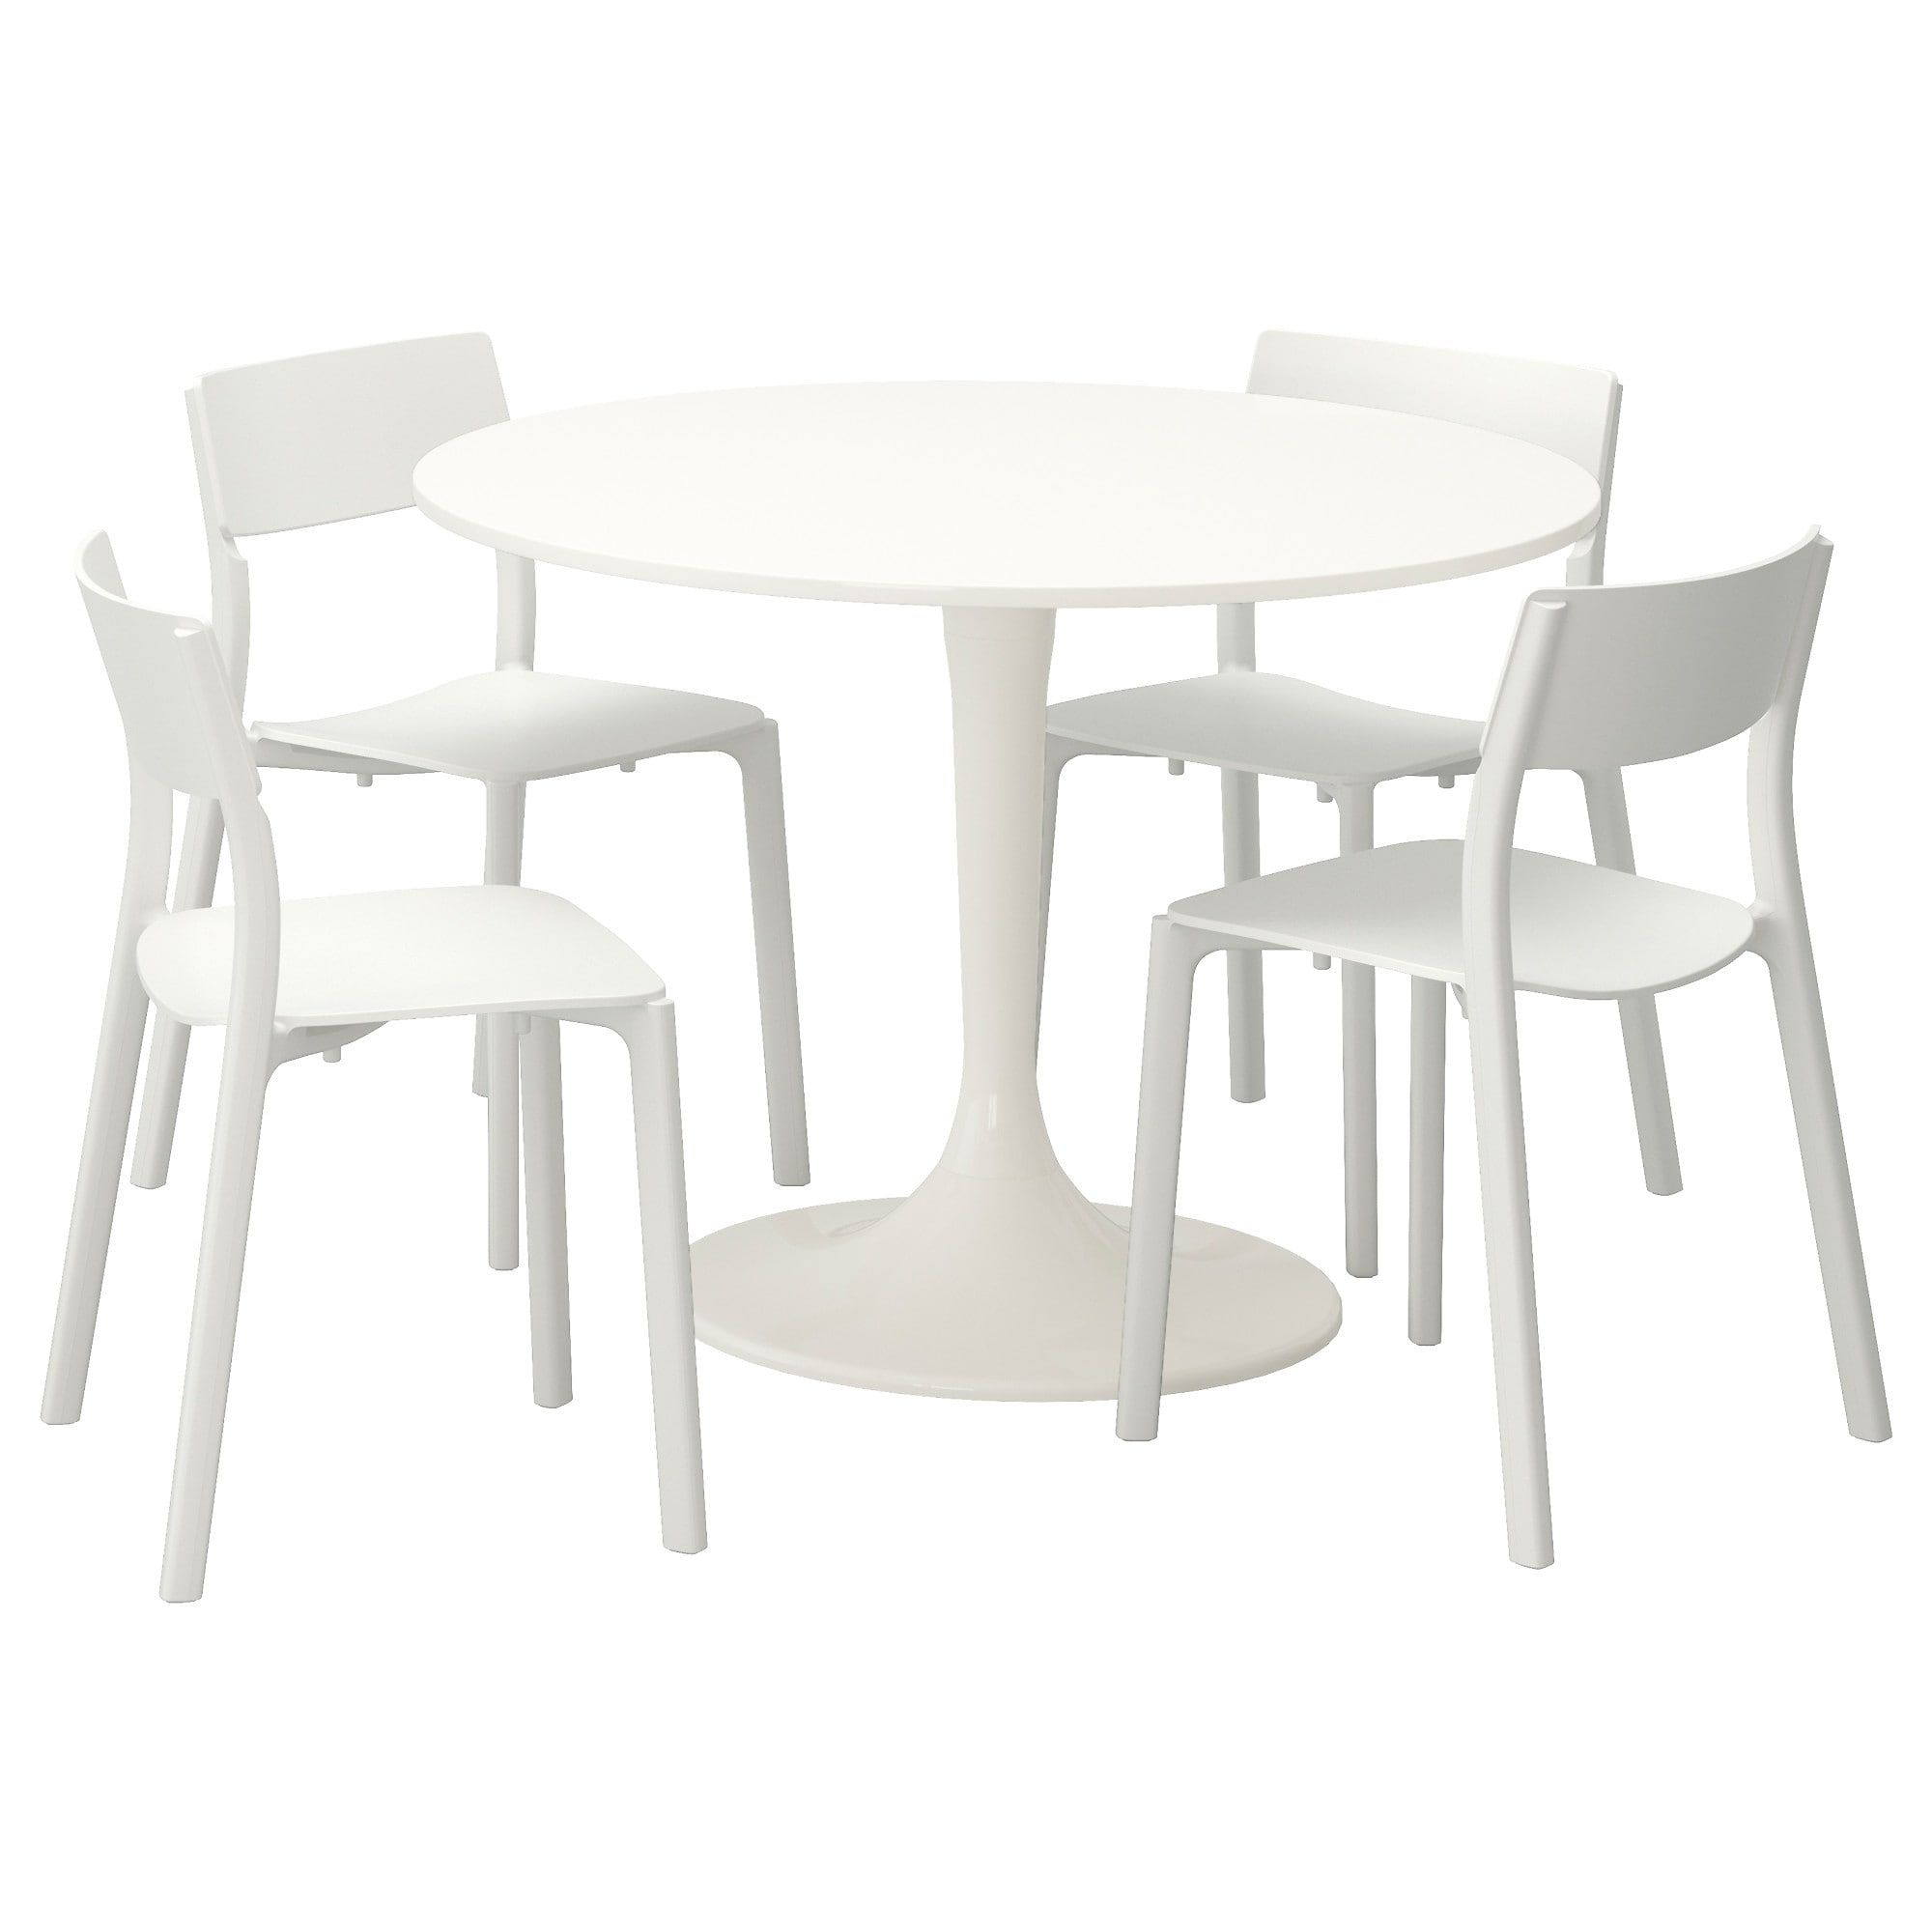 Ikea Docksta Janinge White White Table And 4 Chairs